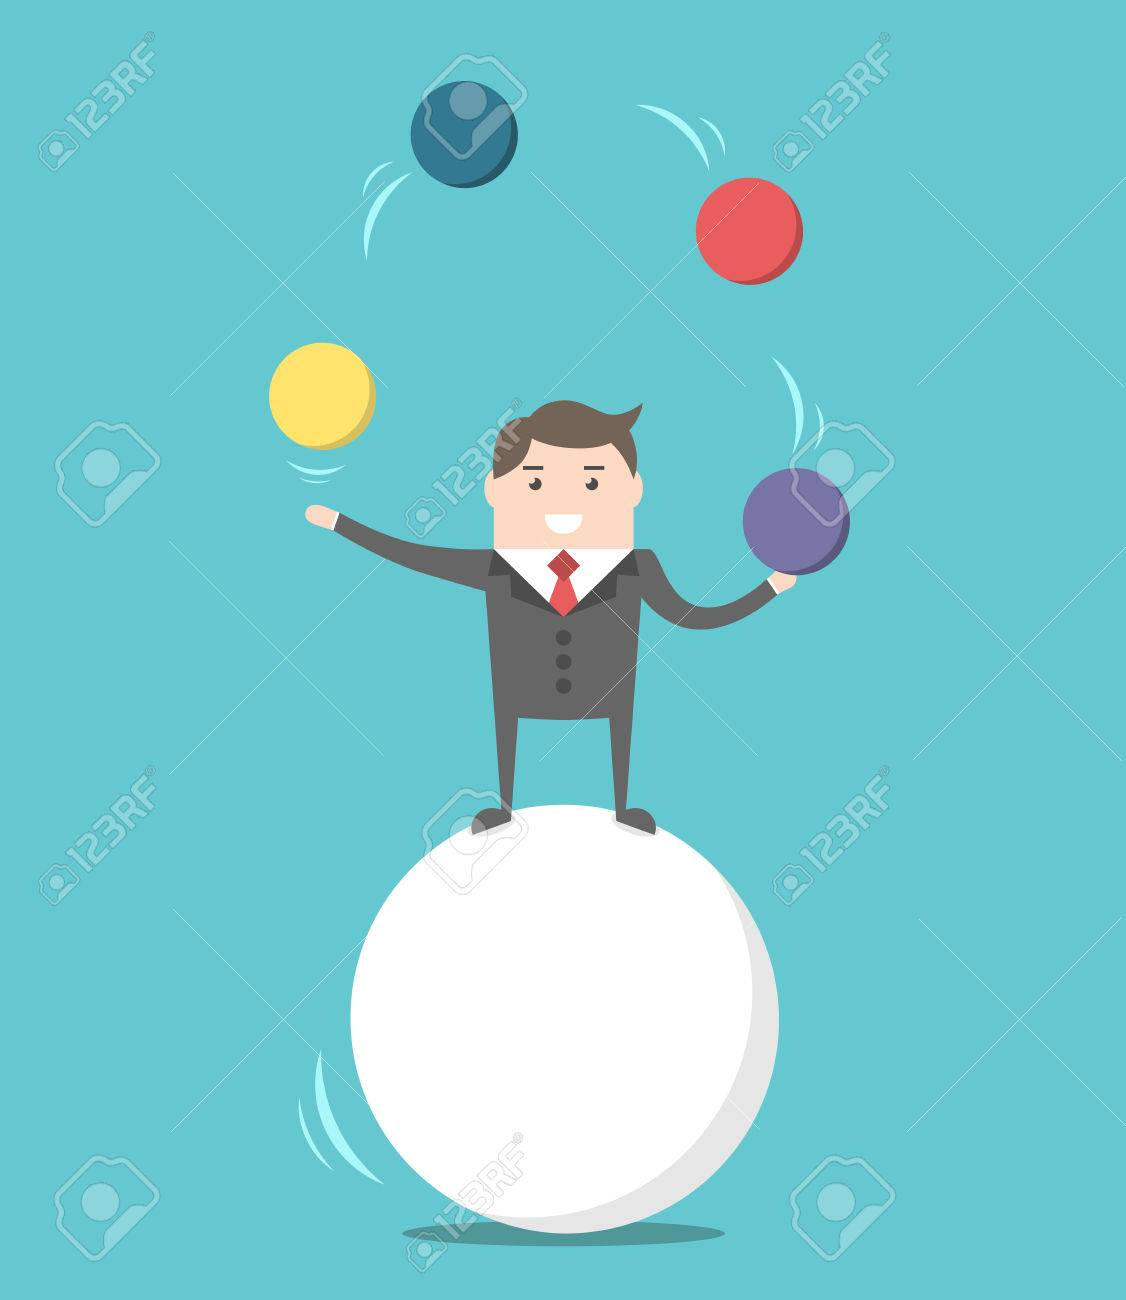 Happy businessman standing on sphere and juggling. Balance, challenge and performance concept. Flat design. EPS 8 vector illustration, no transparency - 65300792